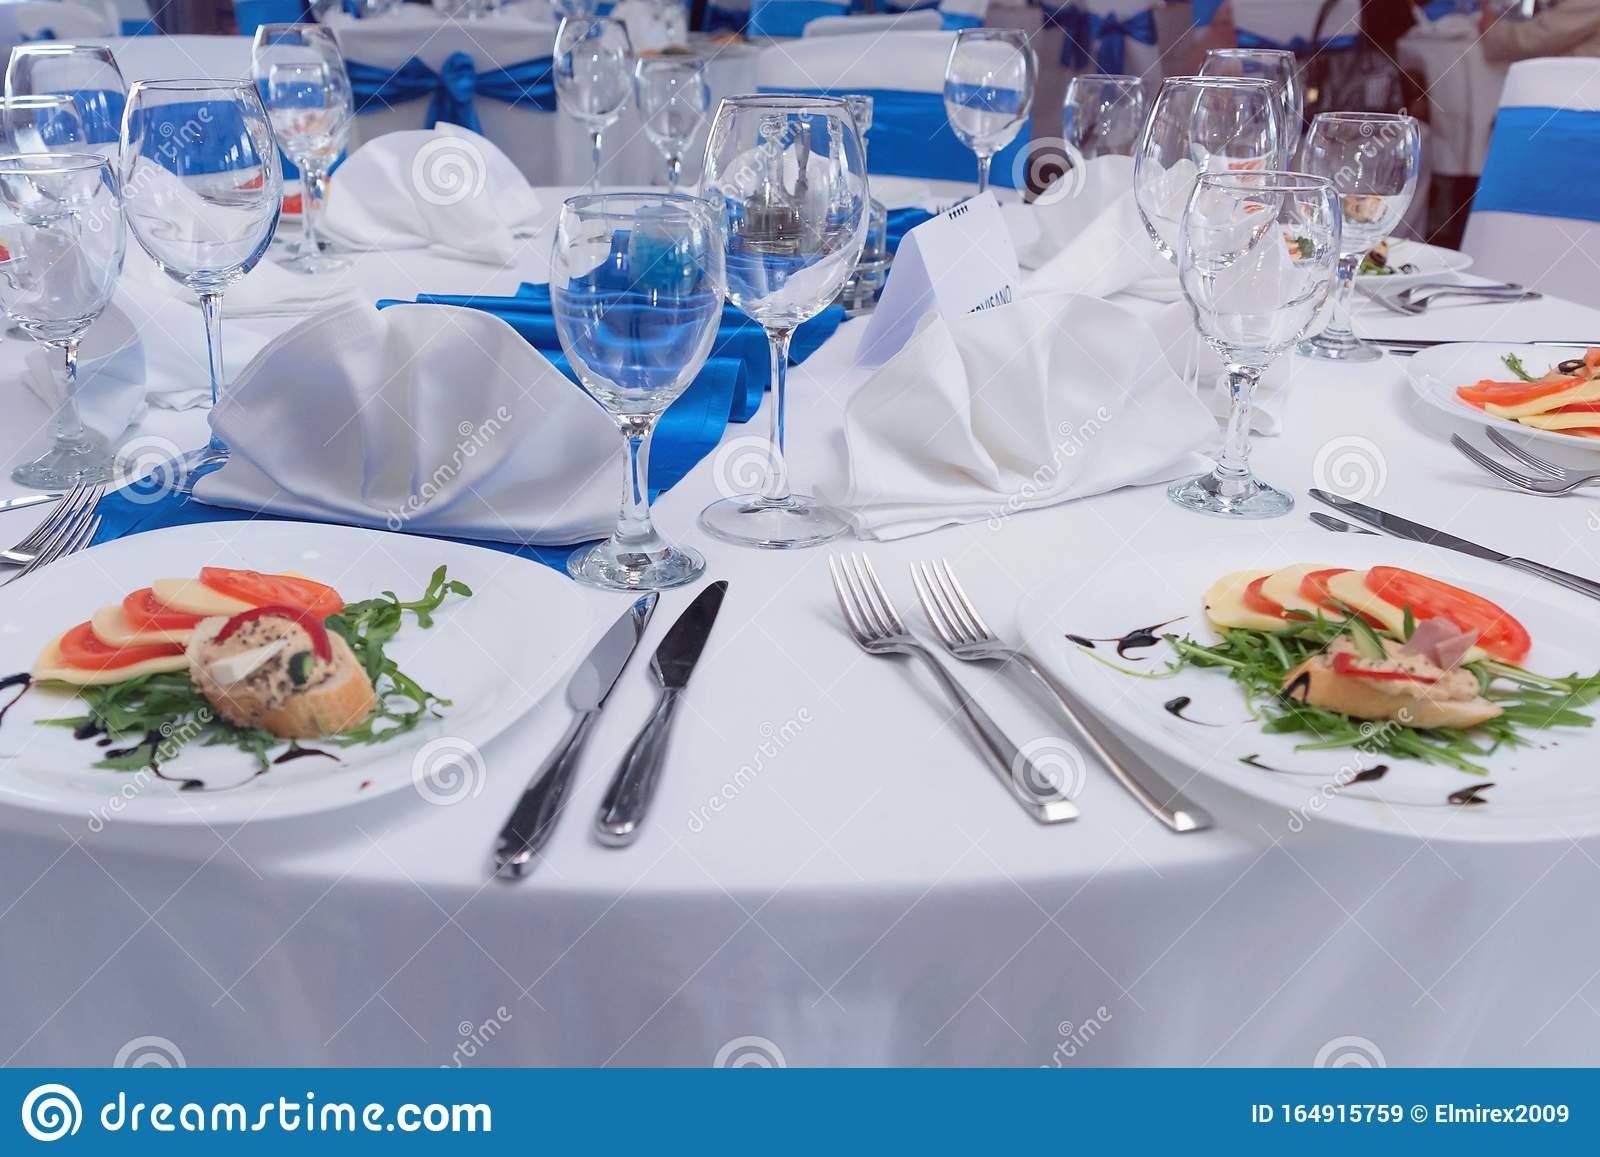 Tables And Chairs In The Restaurant With Food And Full Set Preparation For Dinner Romantic Dinner Table Setup Stock Image Image Of Detail Interior 164915759